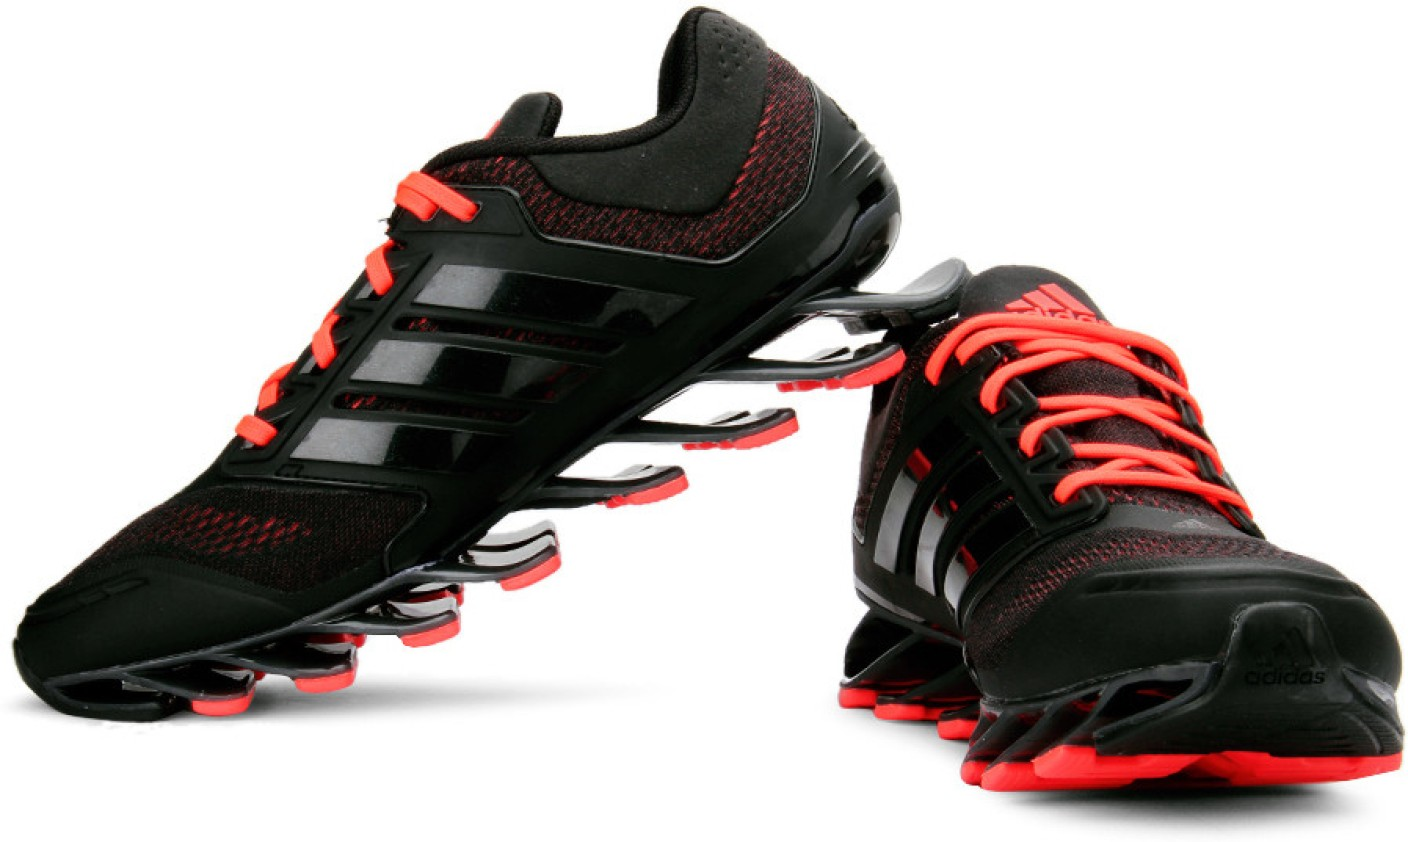 Adidas High Tech Track Shoes Best Price